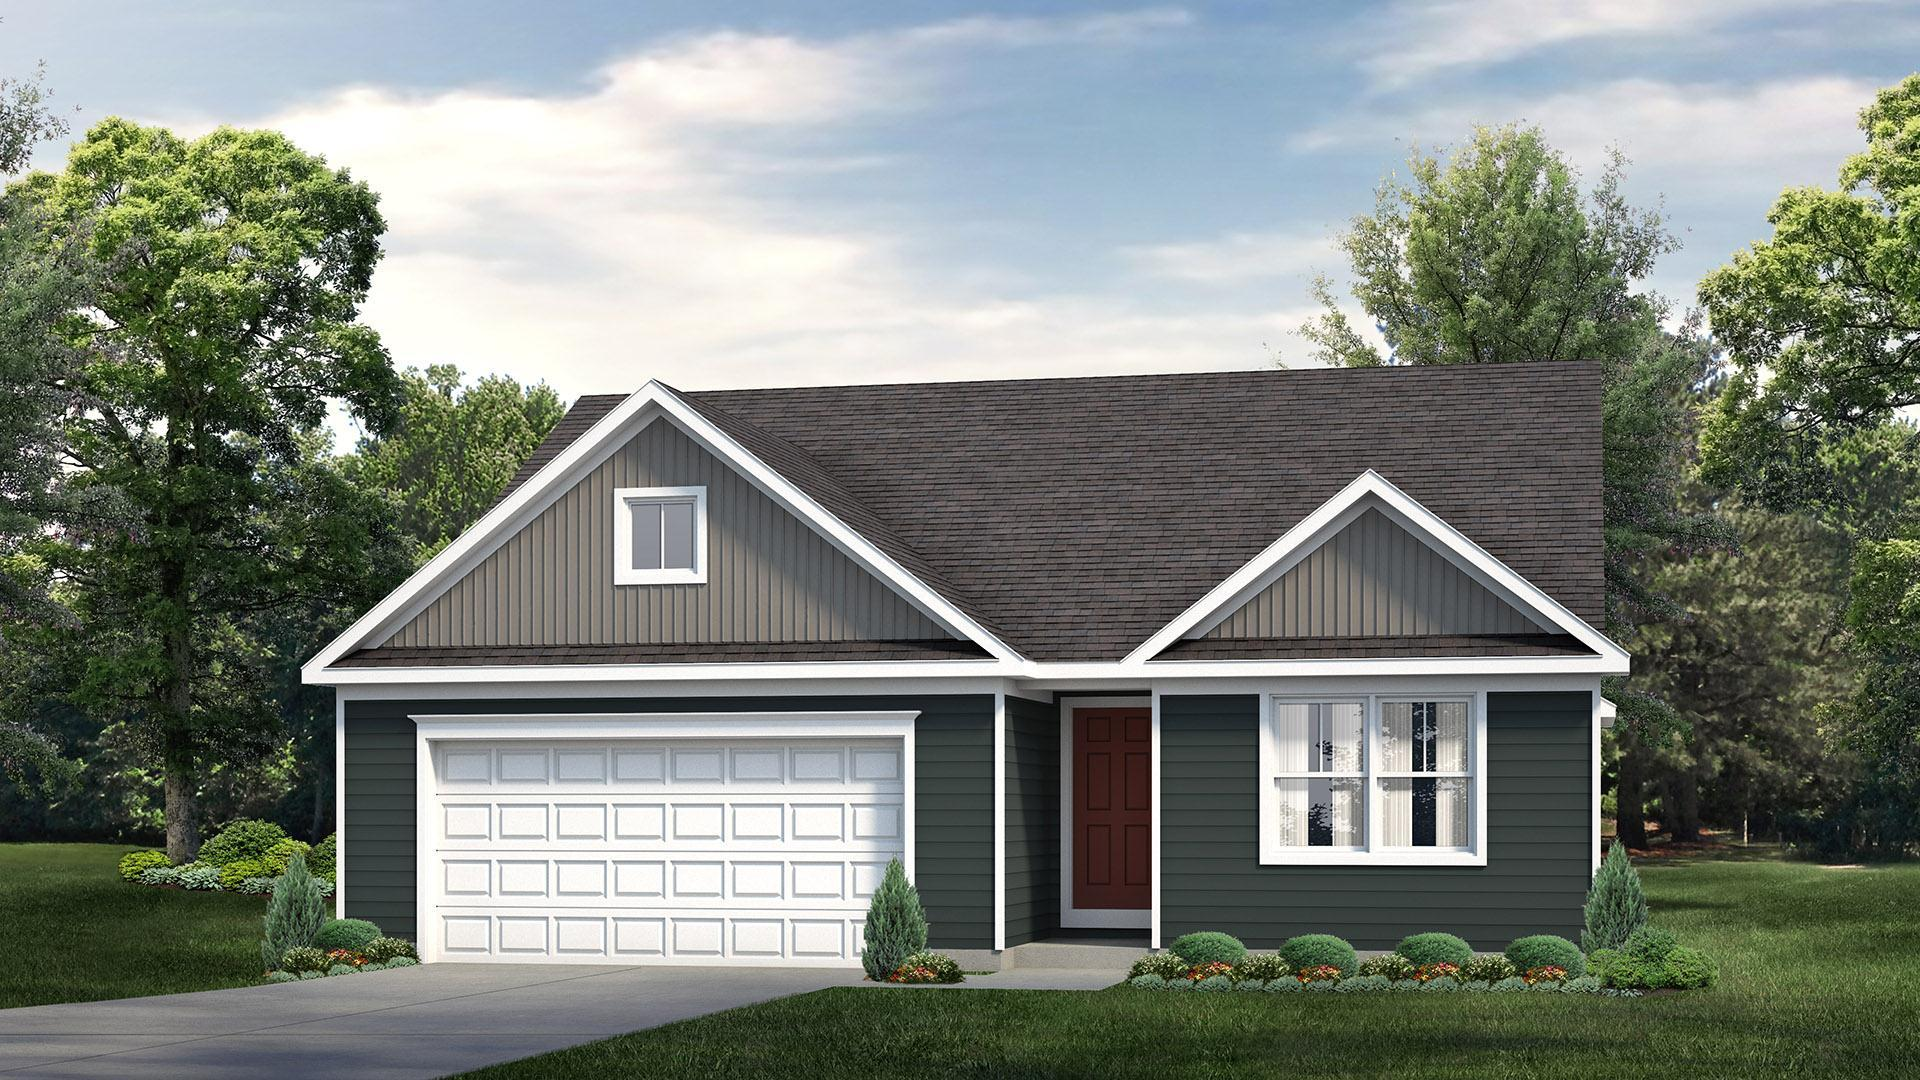 Exterior featured in the Rockford By S & A Homes in State College, PA